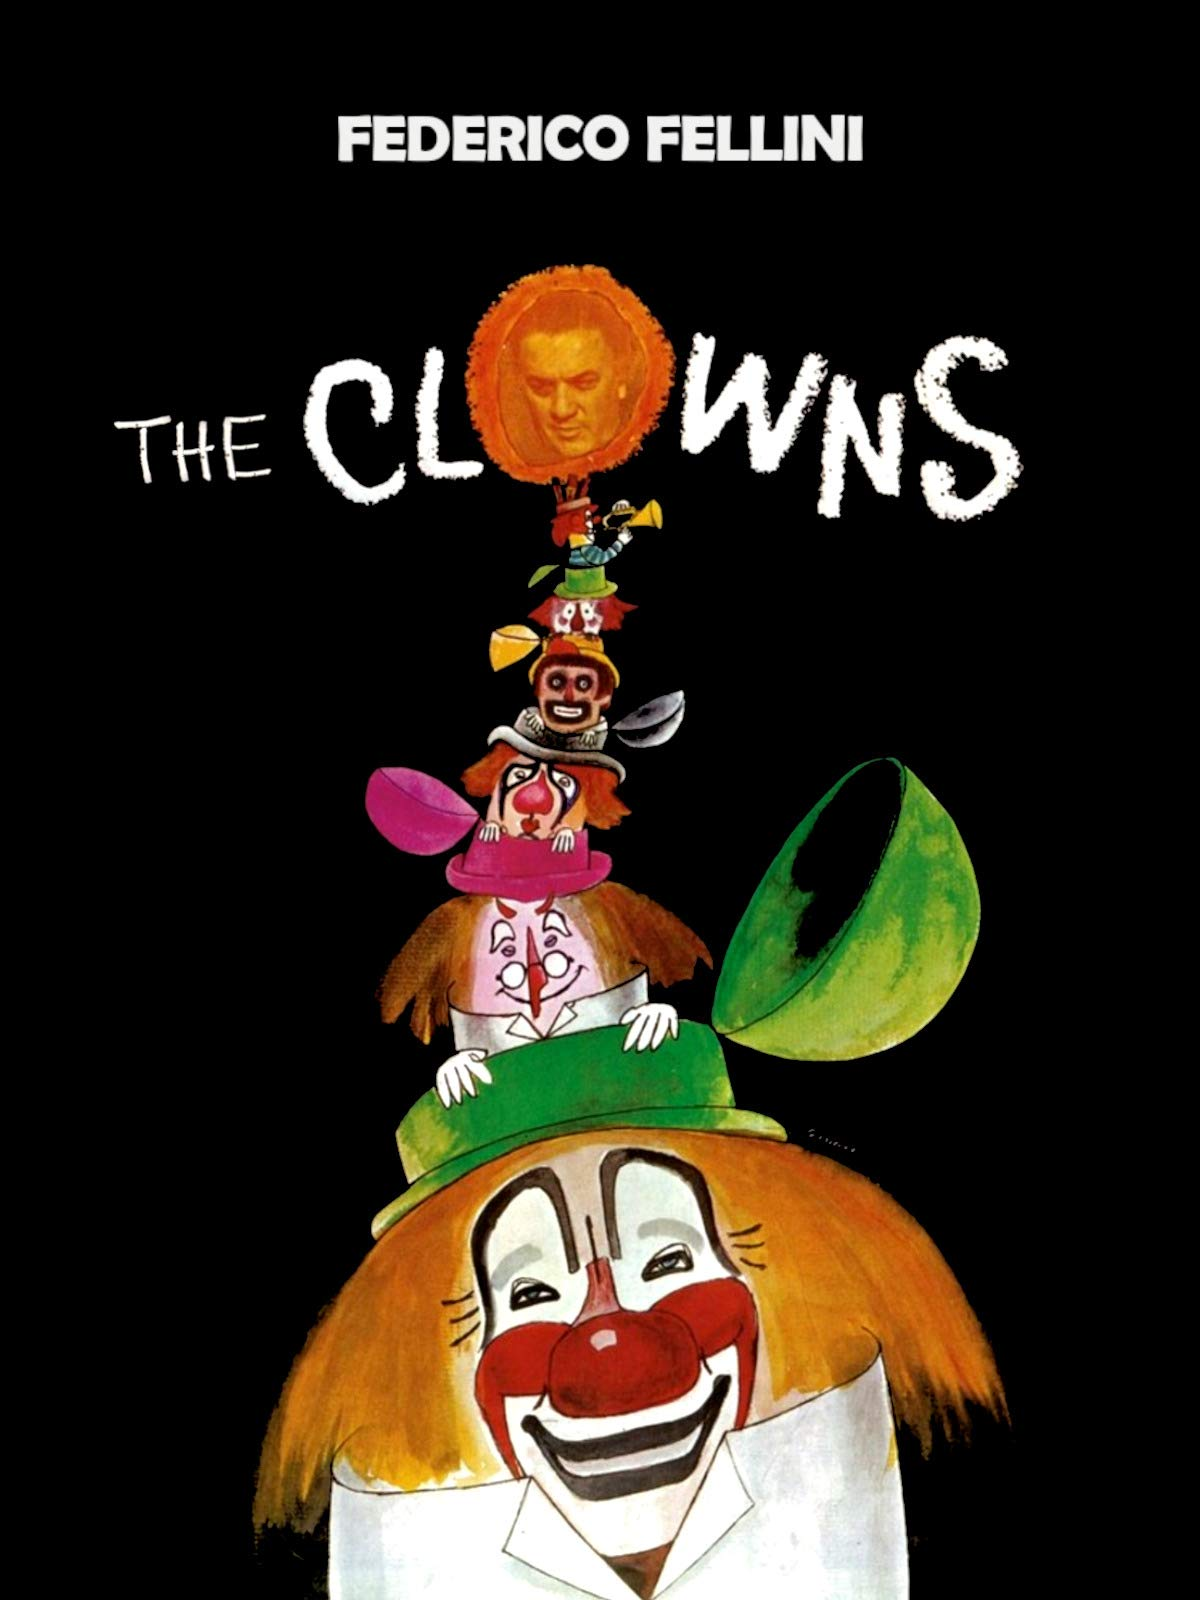 The Clowns